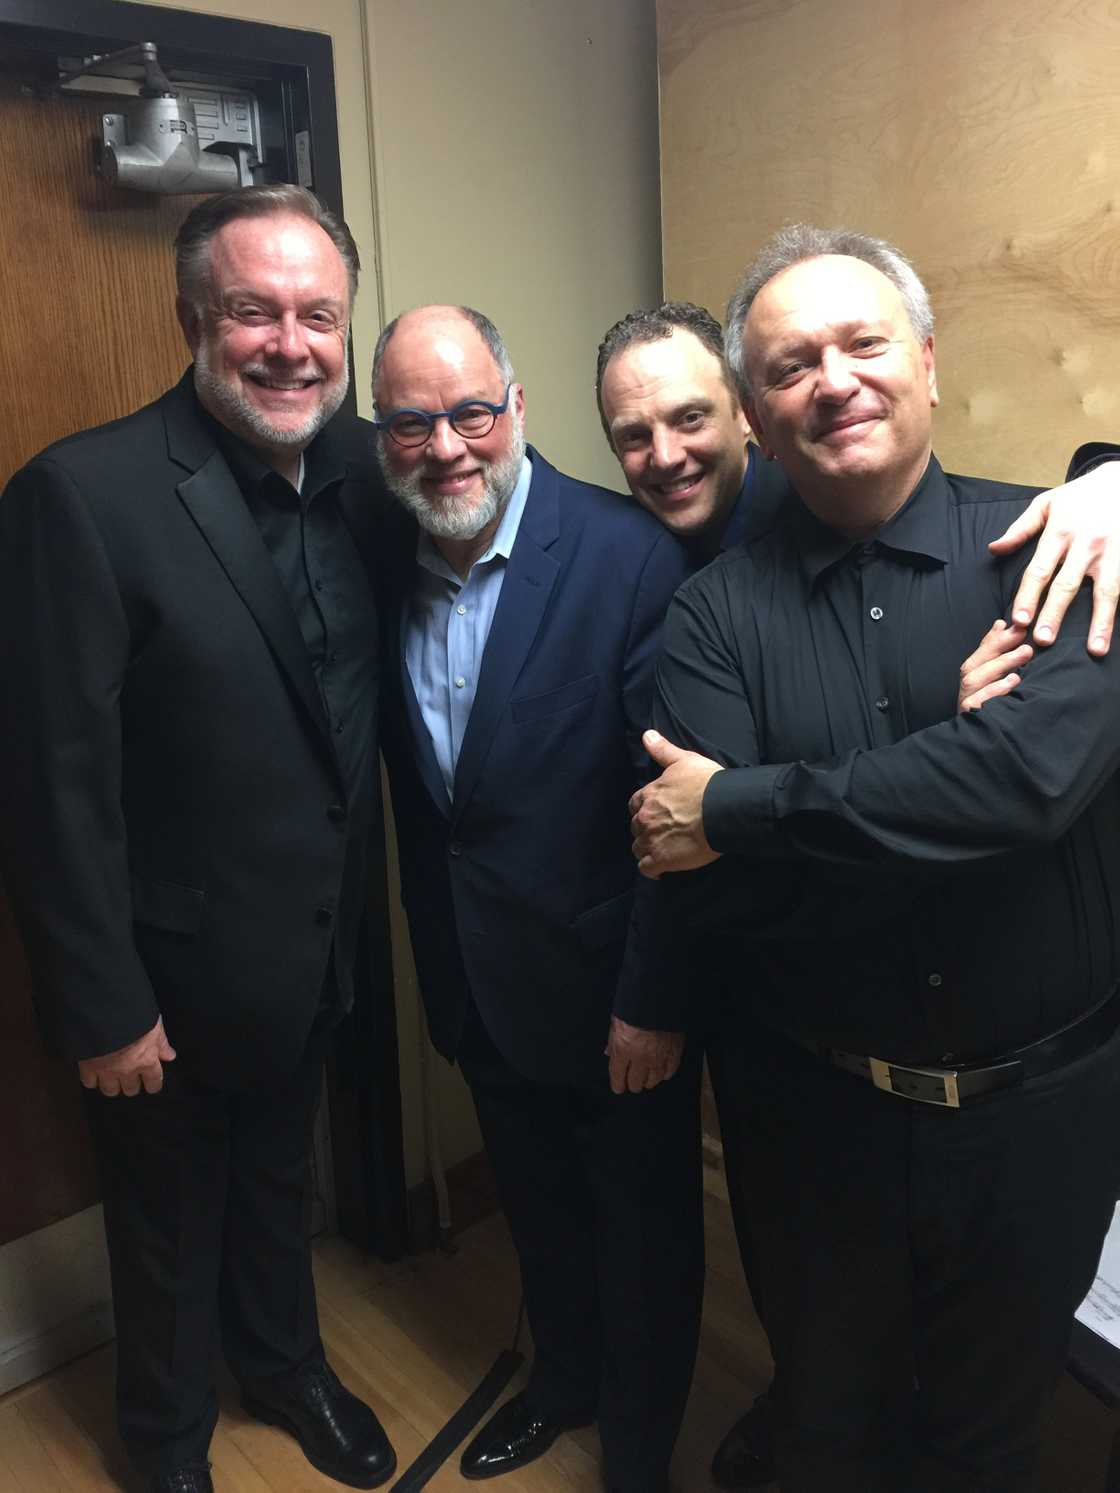 Patrick Raftery smiling with Eric Wilson, Jasper Wood and Mark Anderson as they all stand in a backstage hallway wearing black suits after a performing a concert at the University of British Columbia.